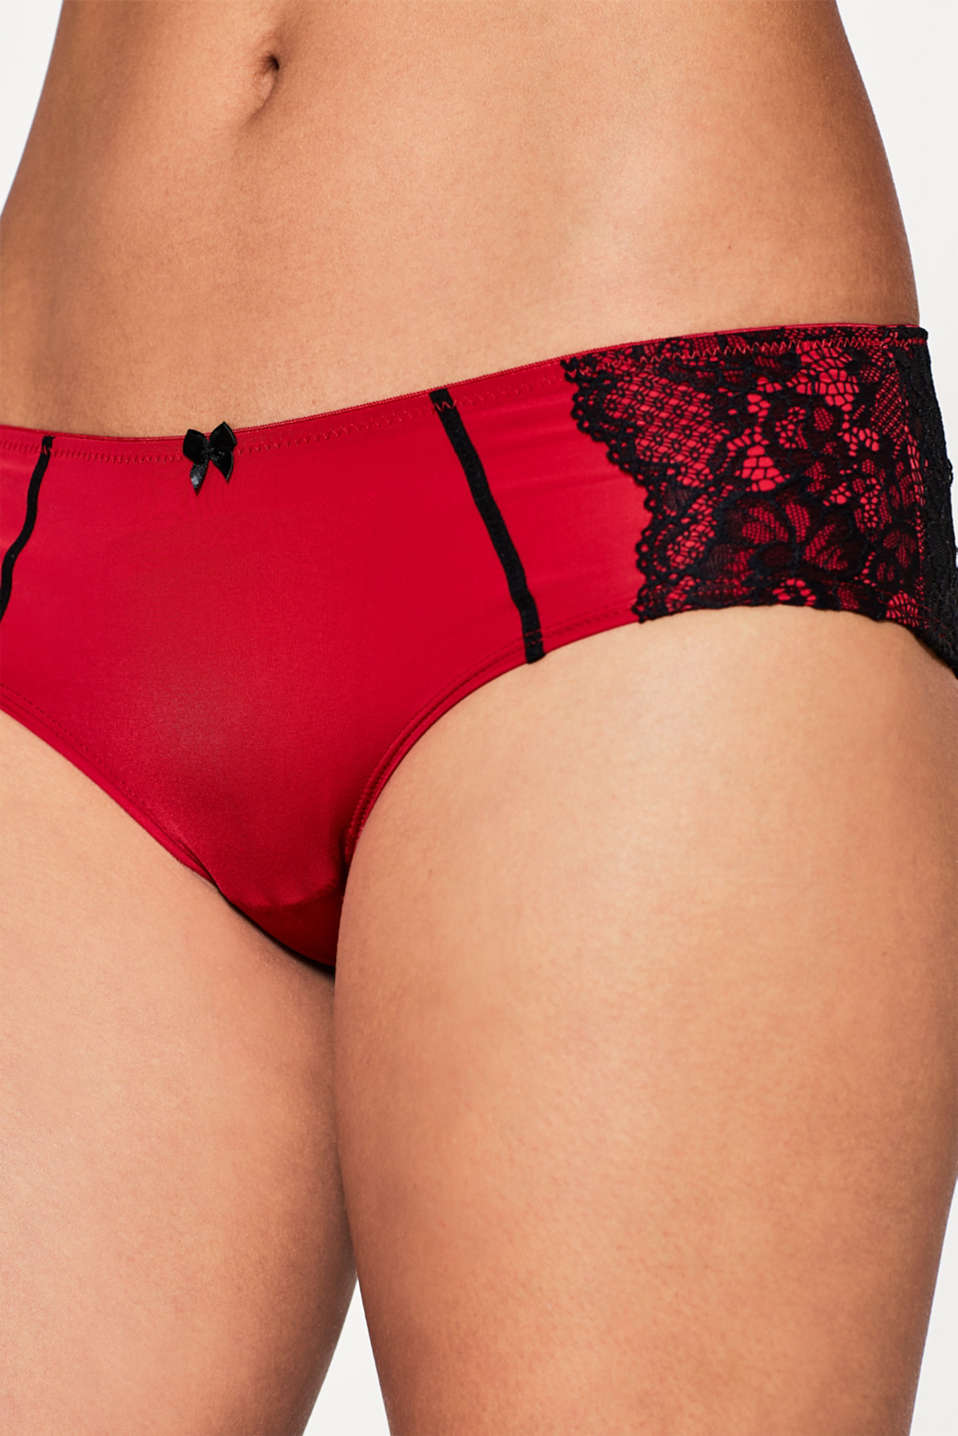 Shorty bicolore orné de dentelle